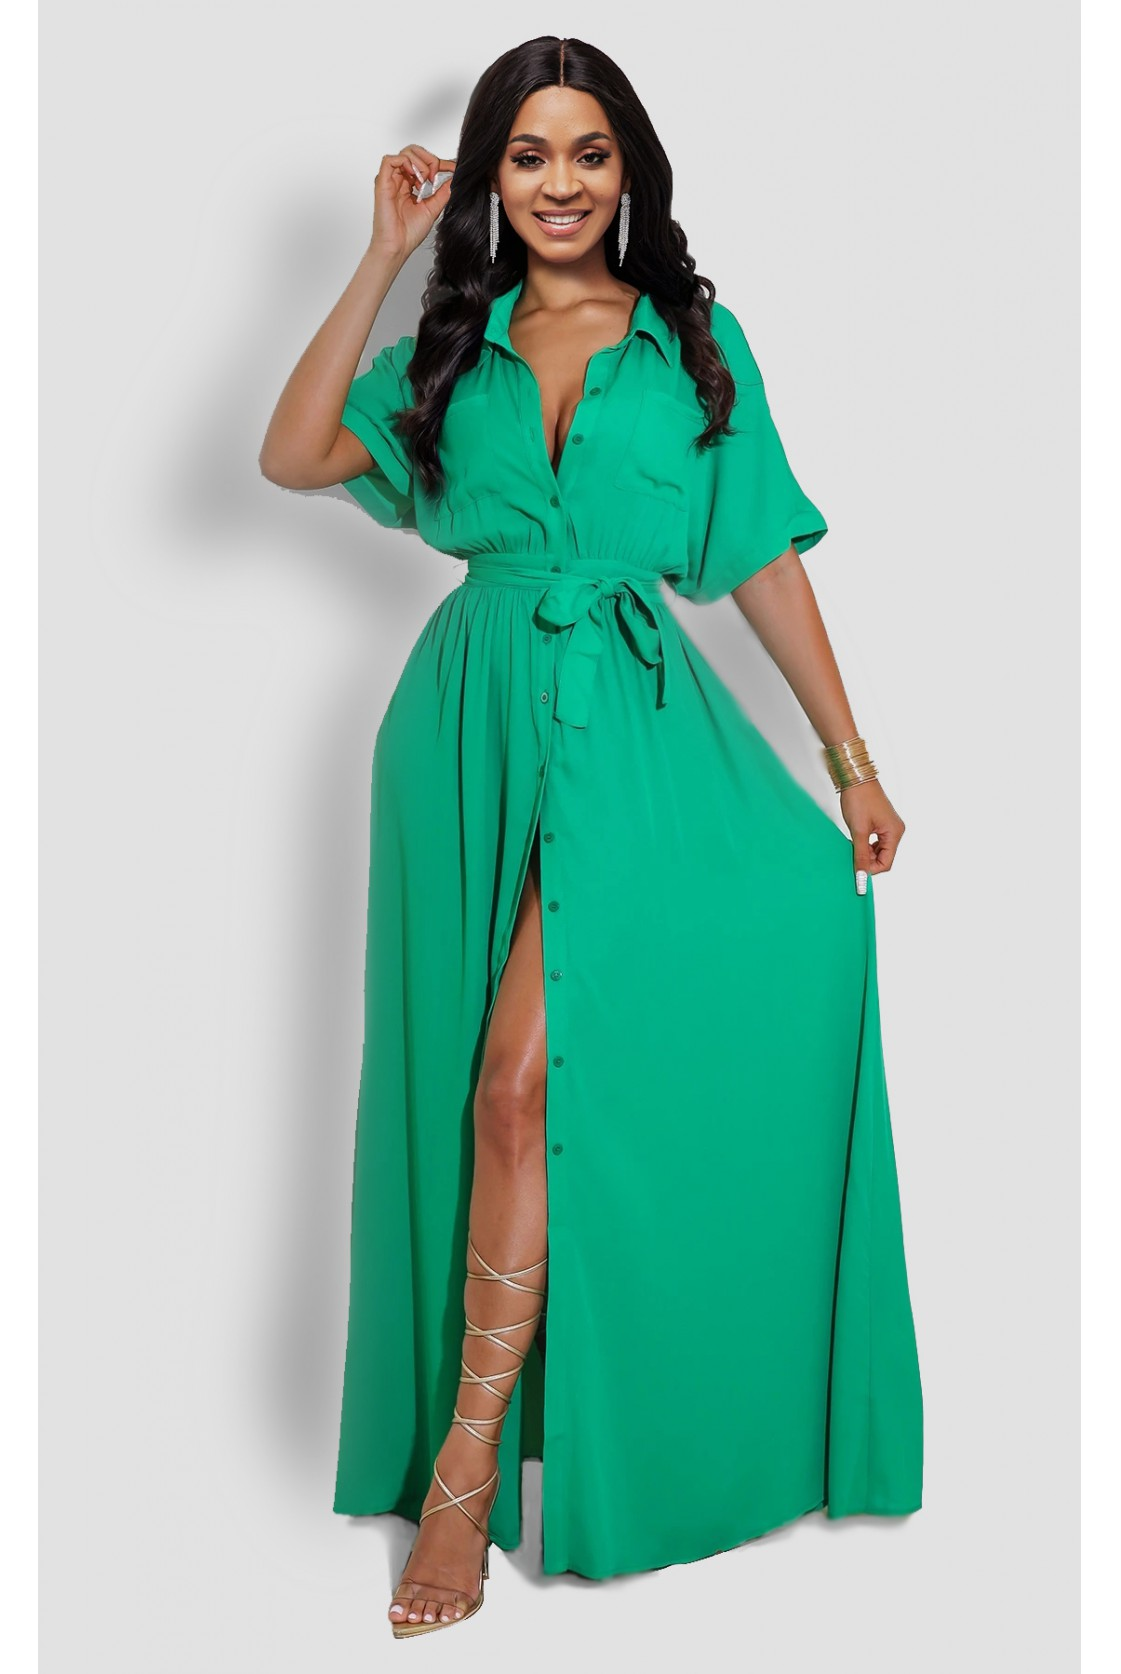 ROTITA Solid Belted Button Up Turndown Collar Dress